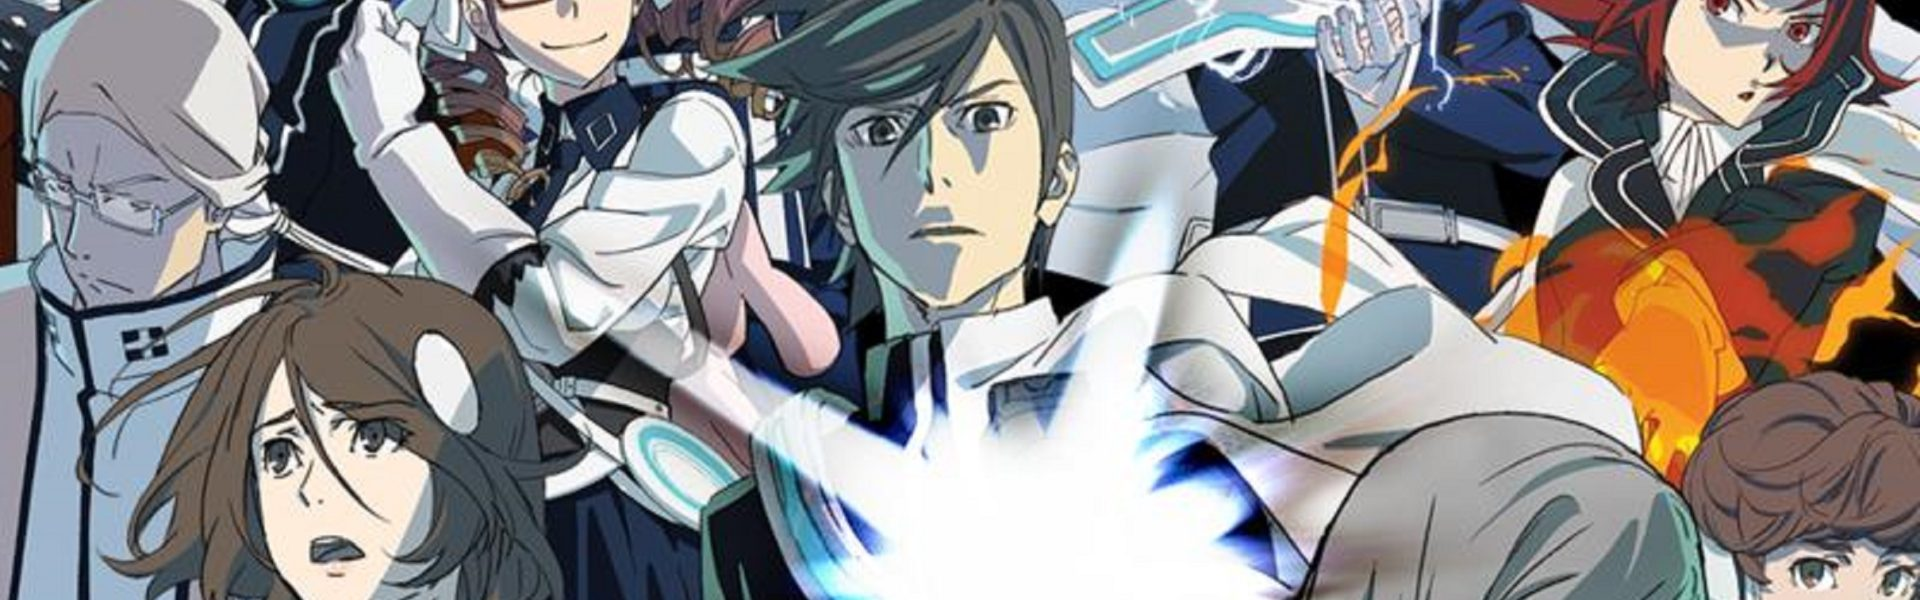 Lost Dimension Box Art